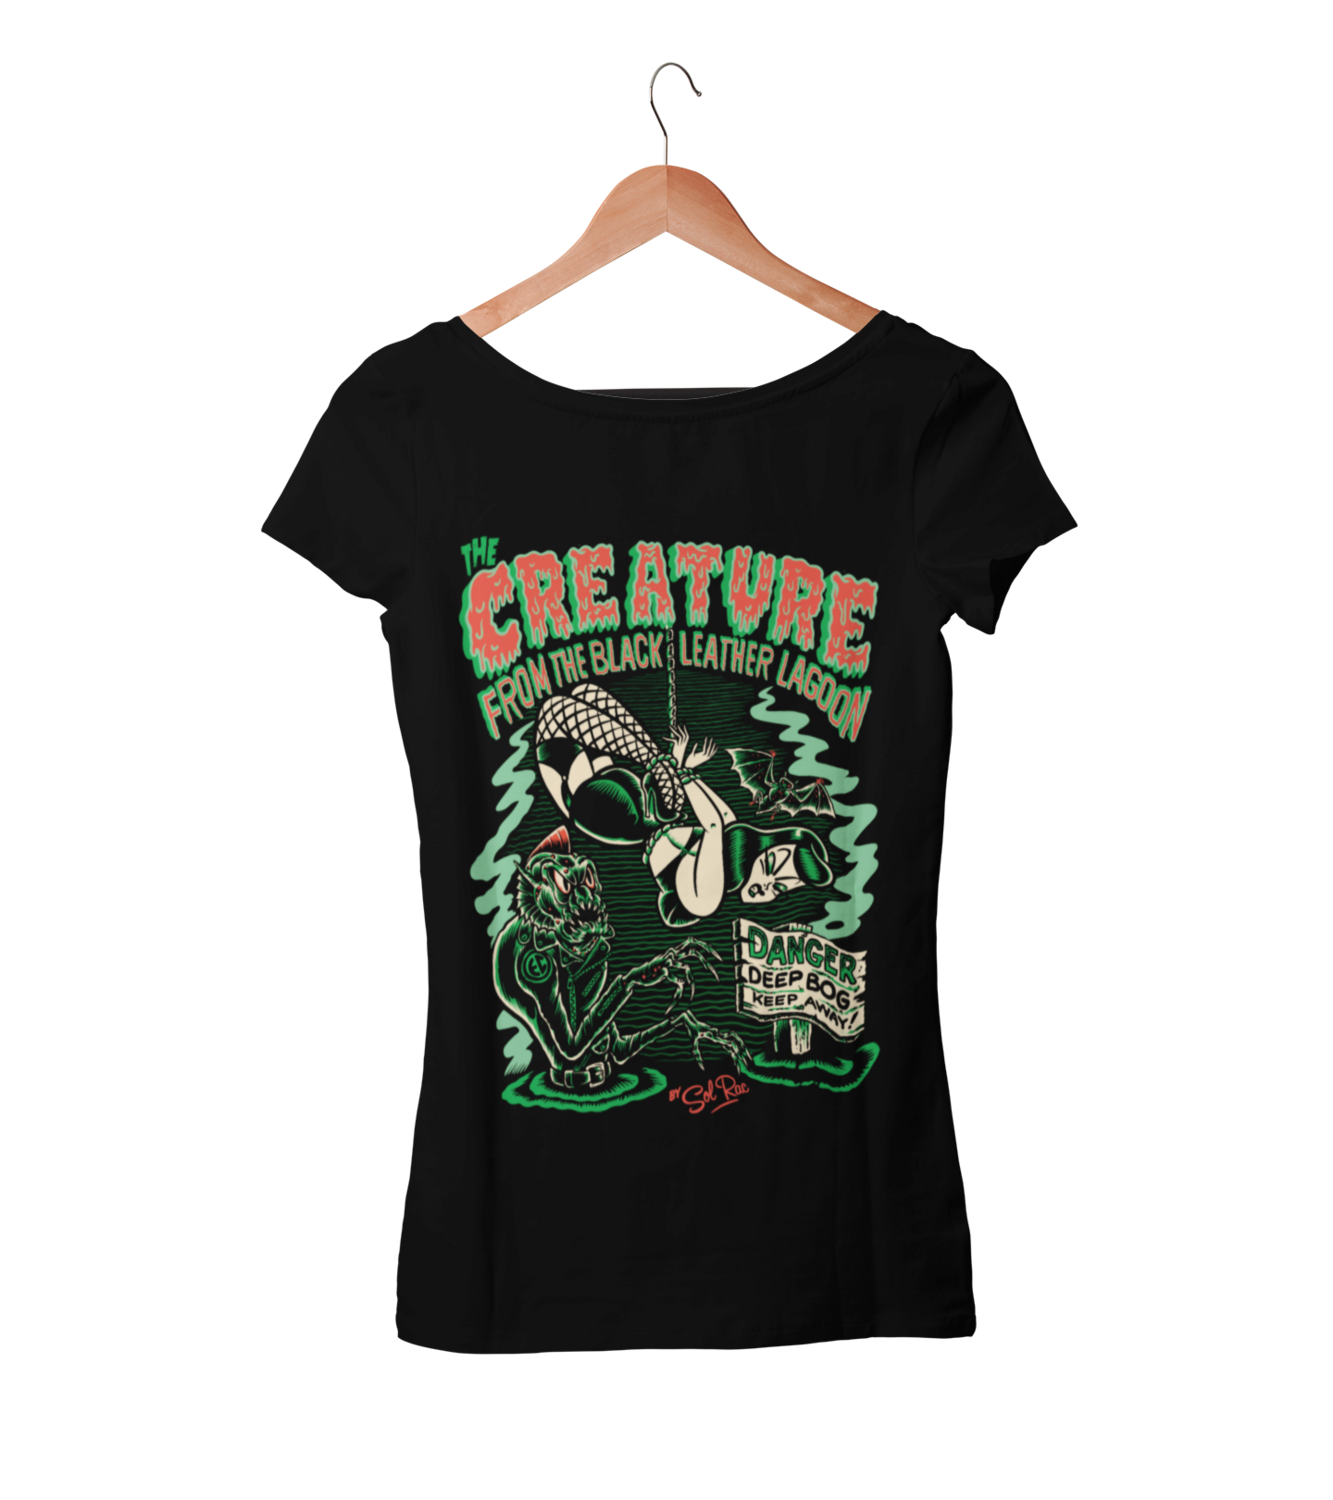 CREATURE FROM BLACK LEATHER T-SHIRT WOMAN BY SOL RAC